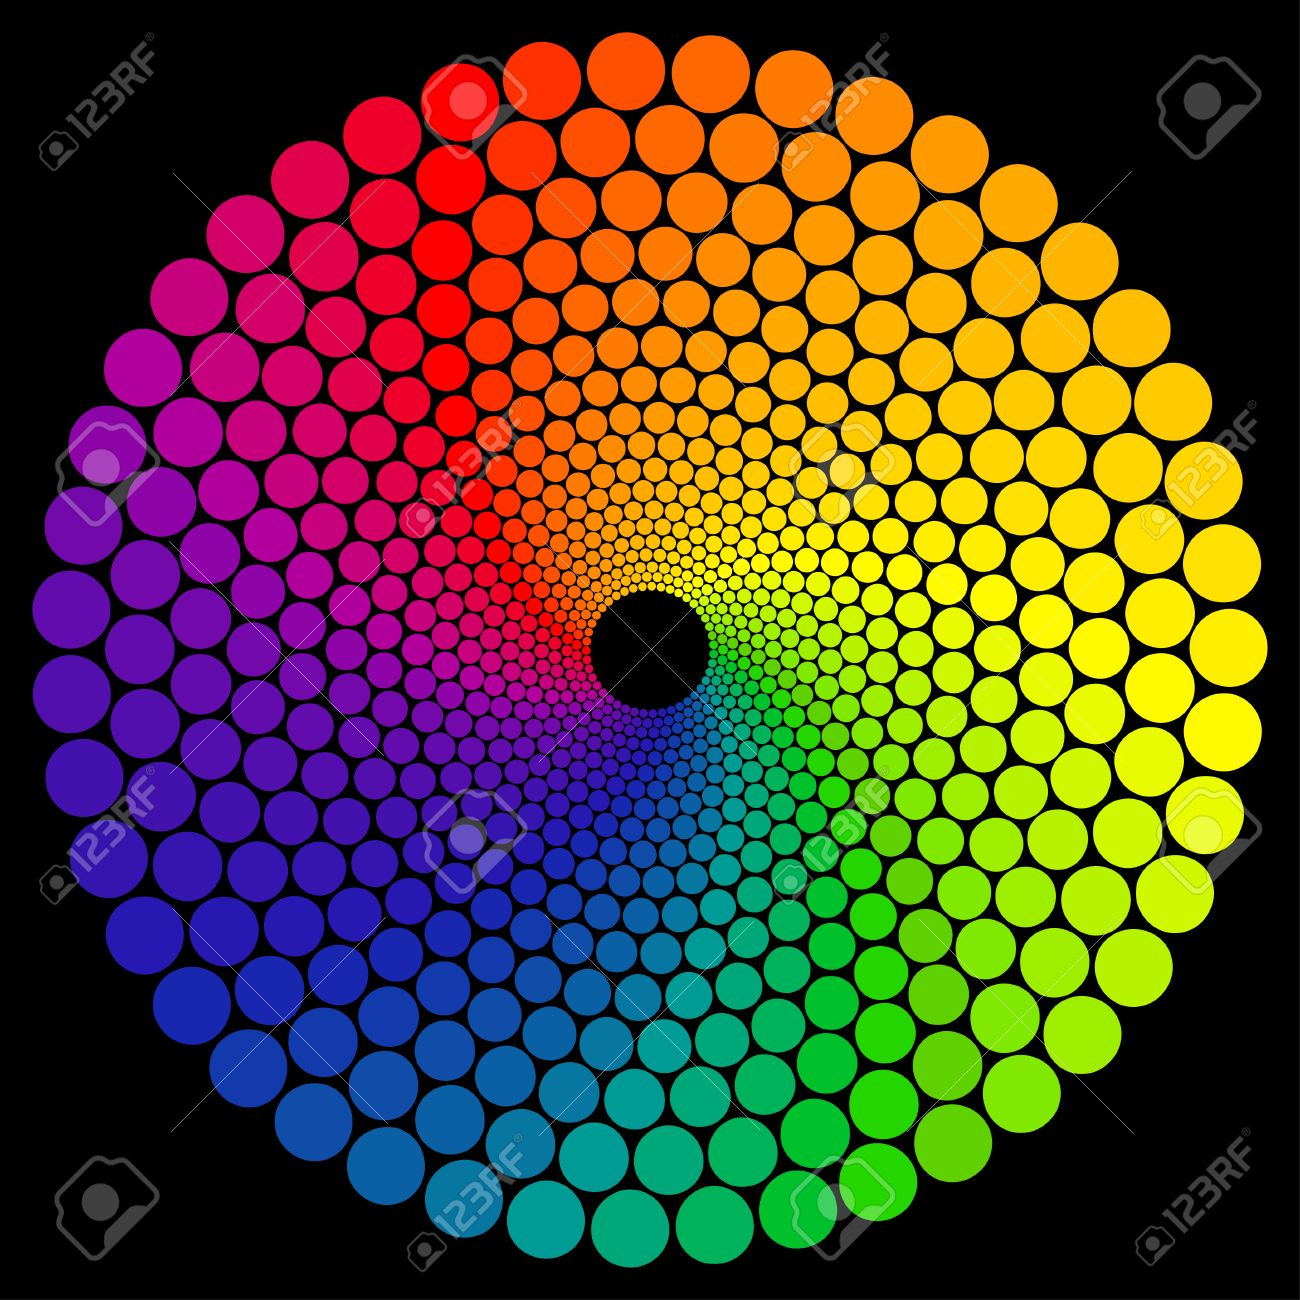 Color Wheel Or Color Circle Isolated On Black Background Royalty